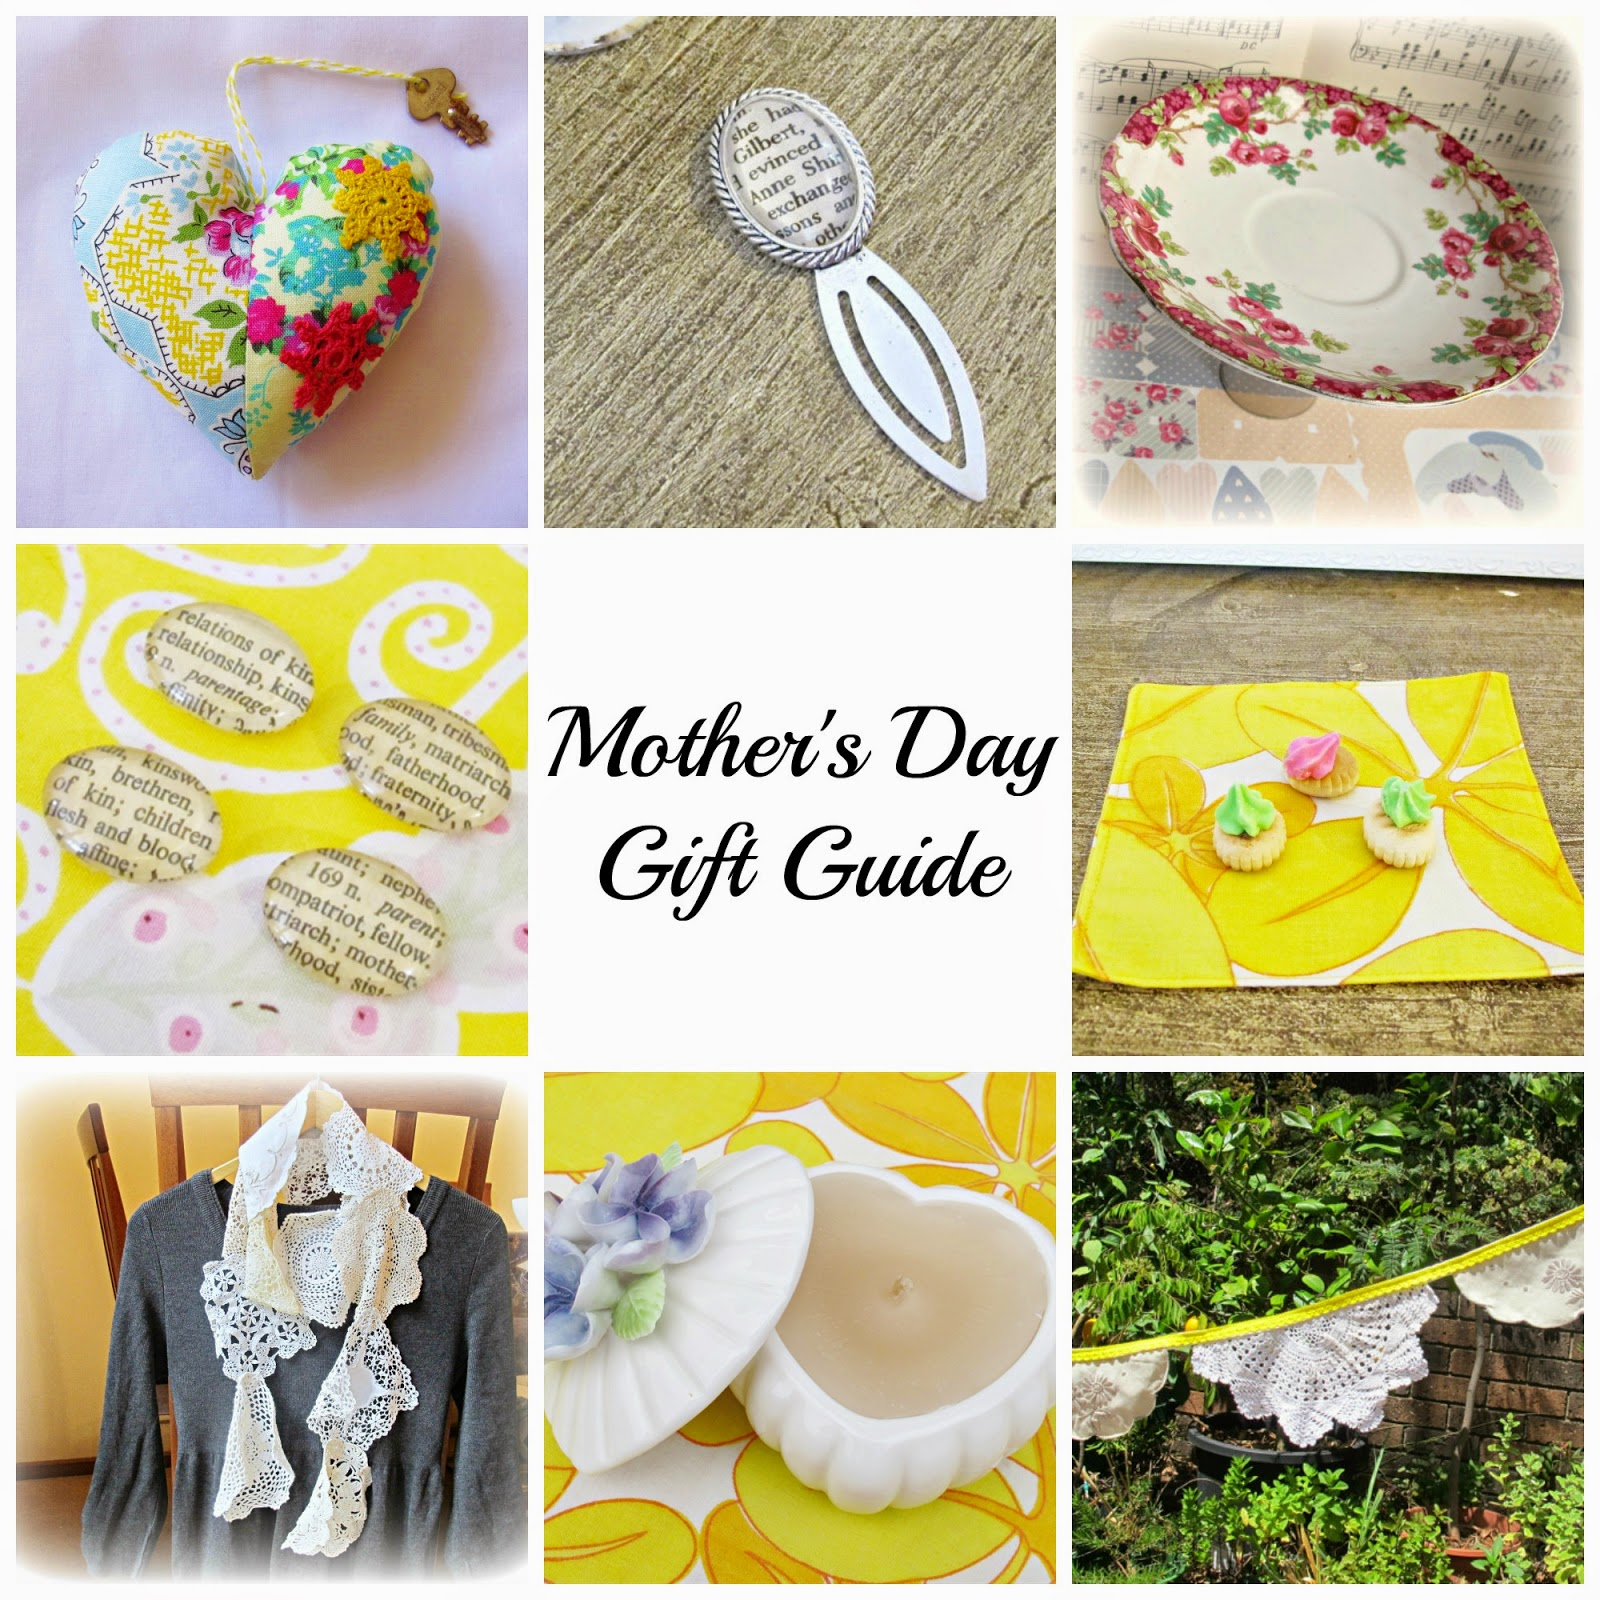 image domum vindemia mother's day gift guide shabby chic vintage-inspired upcycled scarves home decor buntings napkins